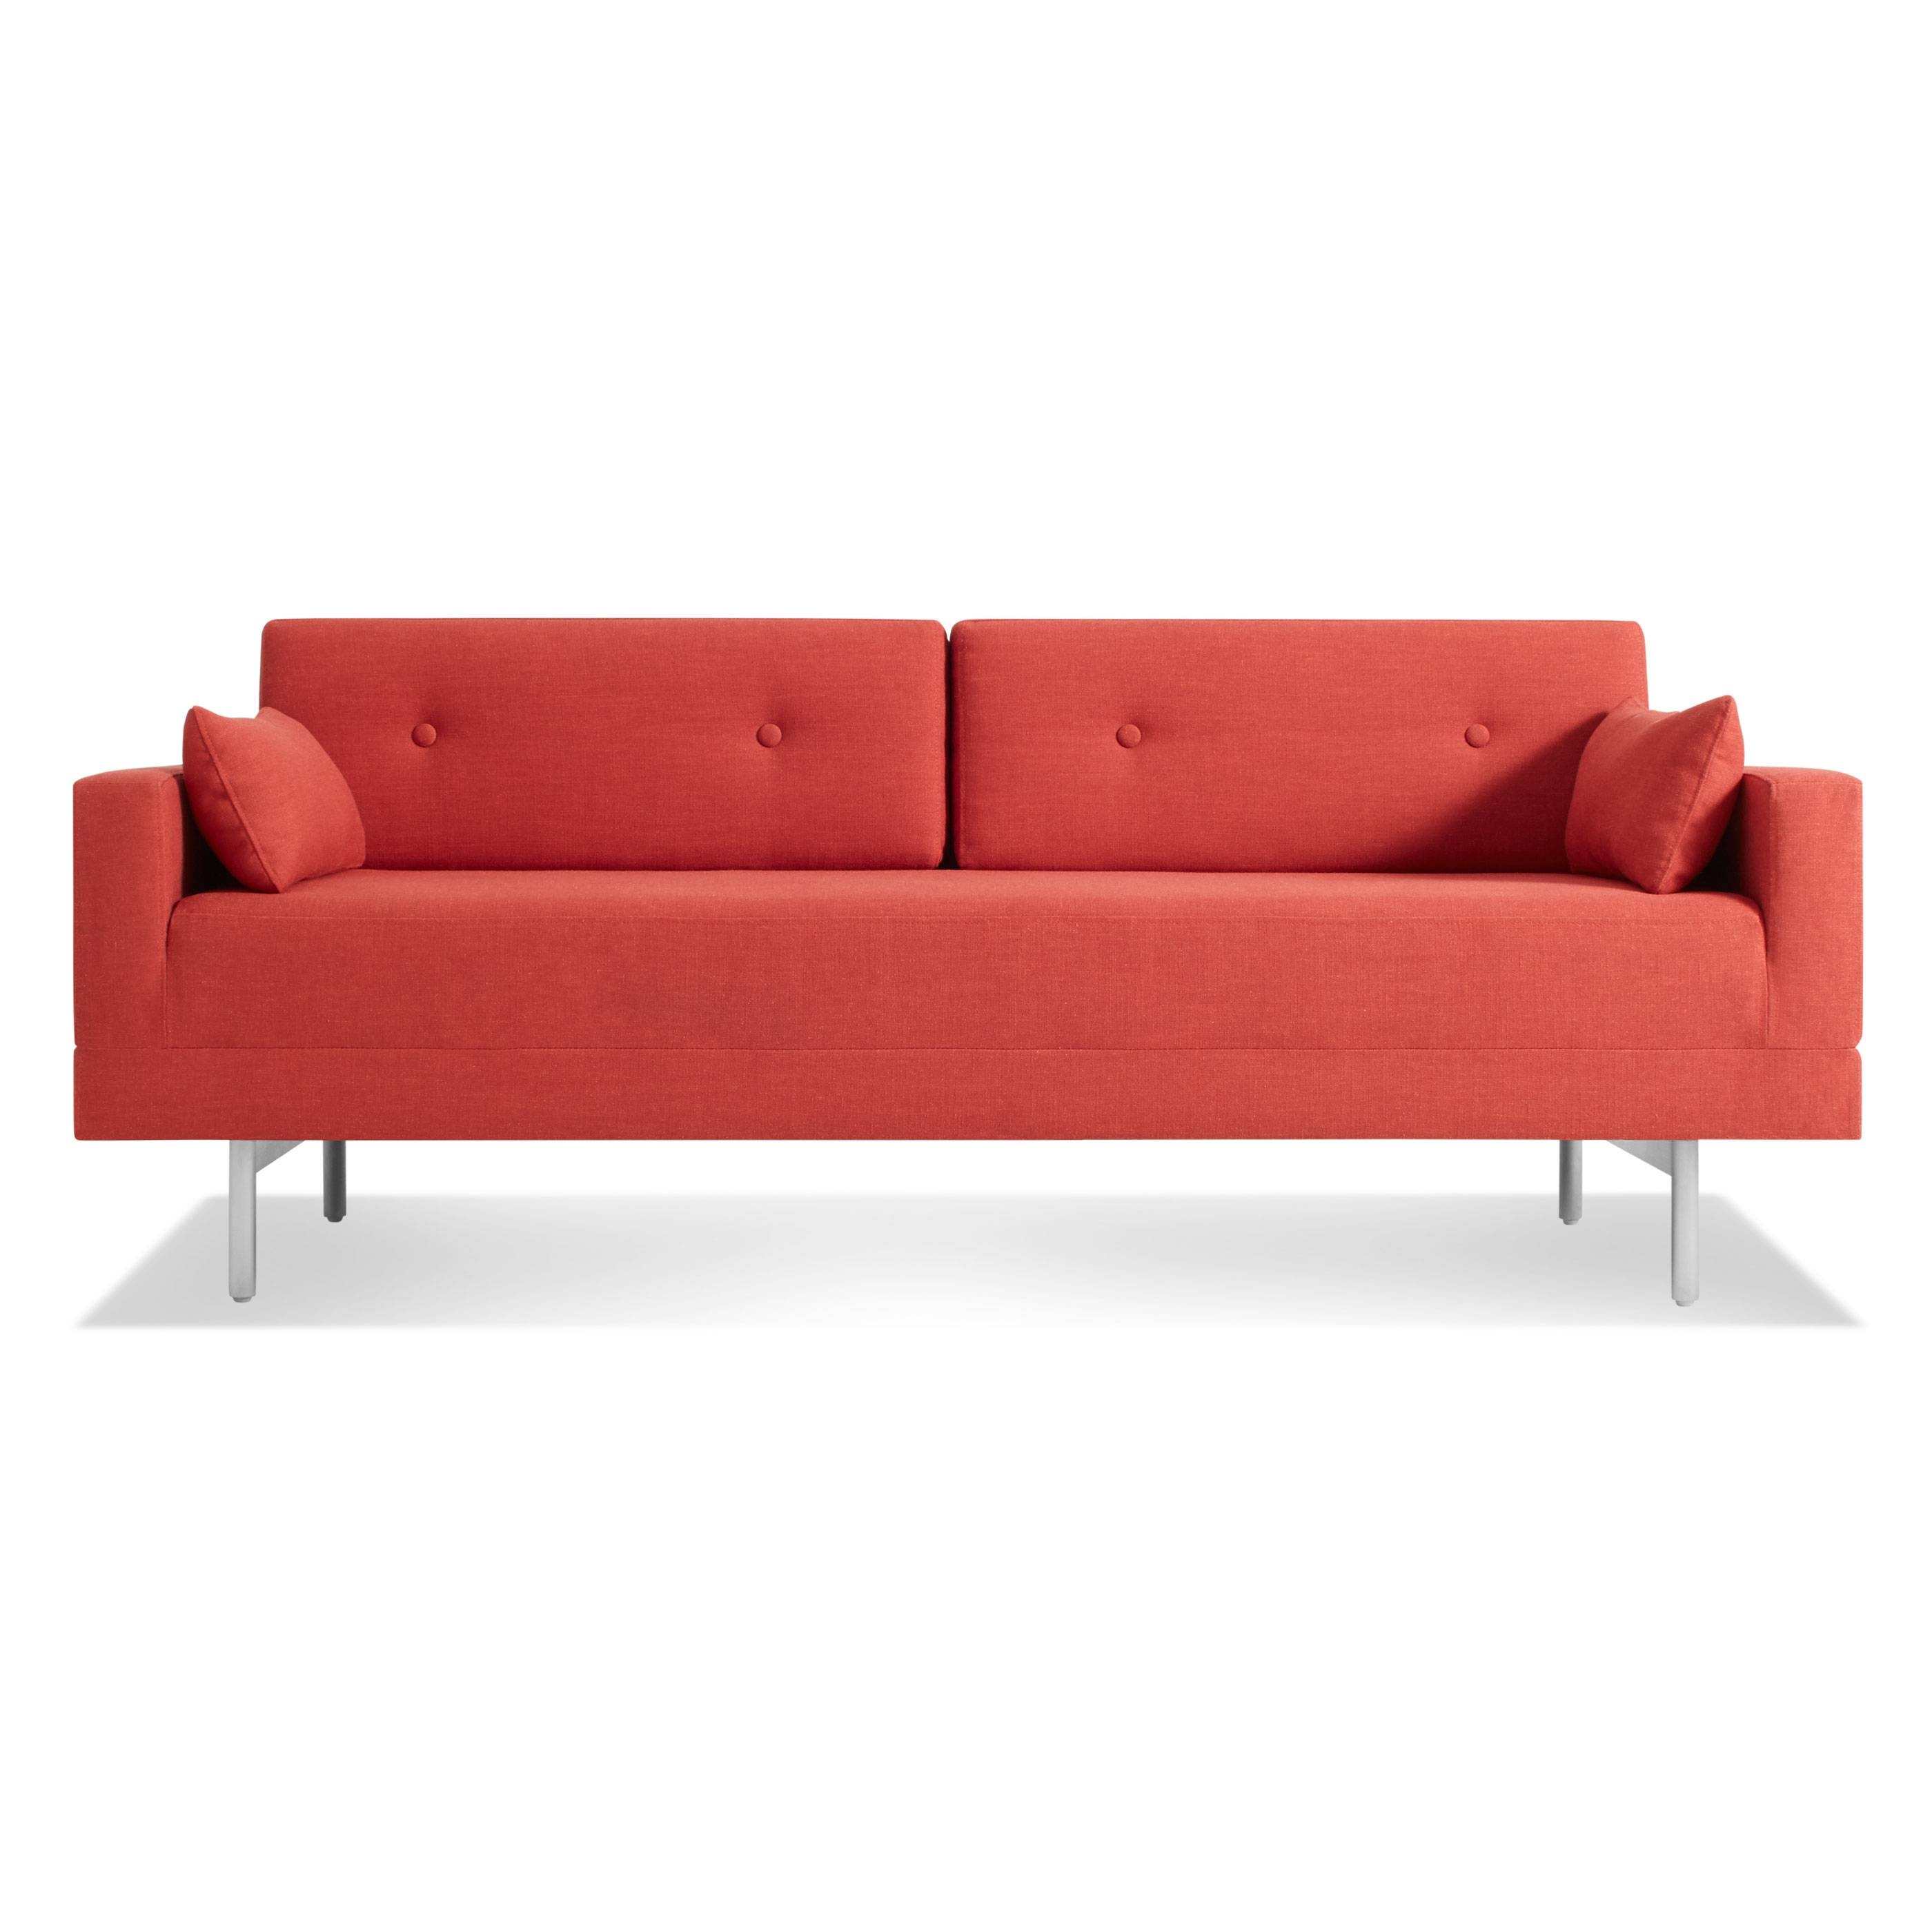 One Night Stand Modern Queen Sleeper Sofa | Blu Dot for Blu Dot Sleeper Sofas (Image 7 of 15)